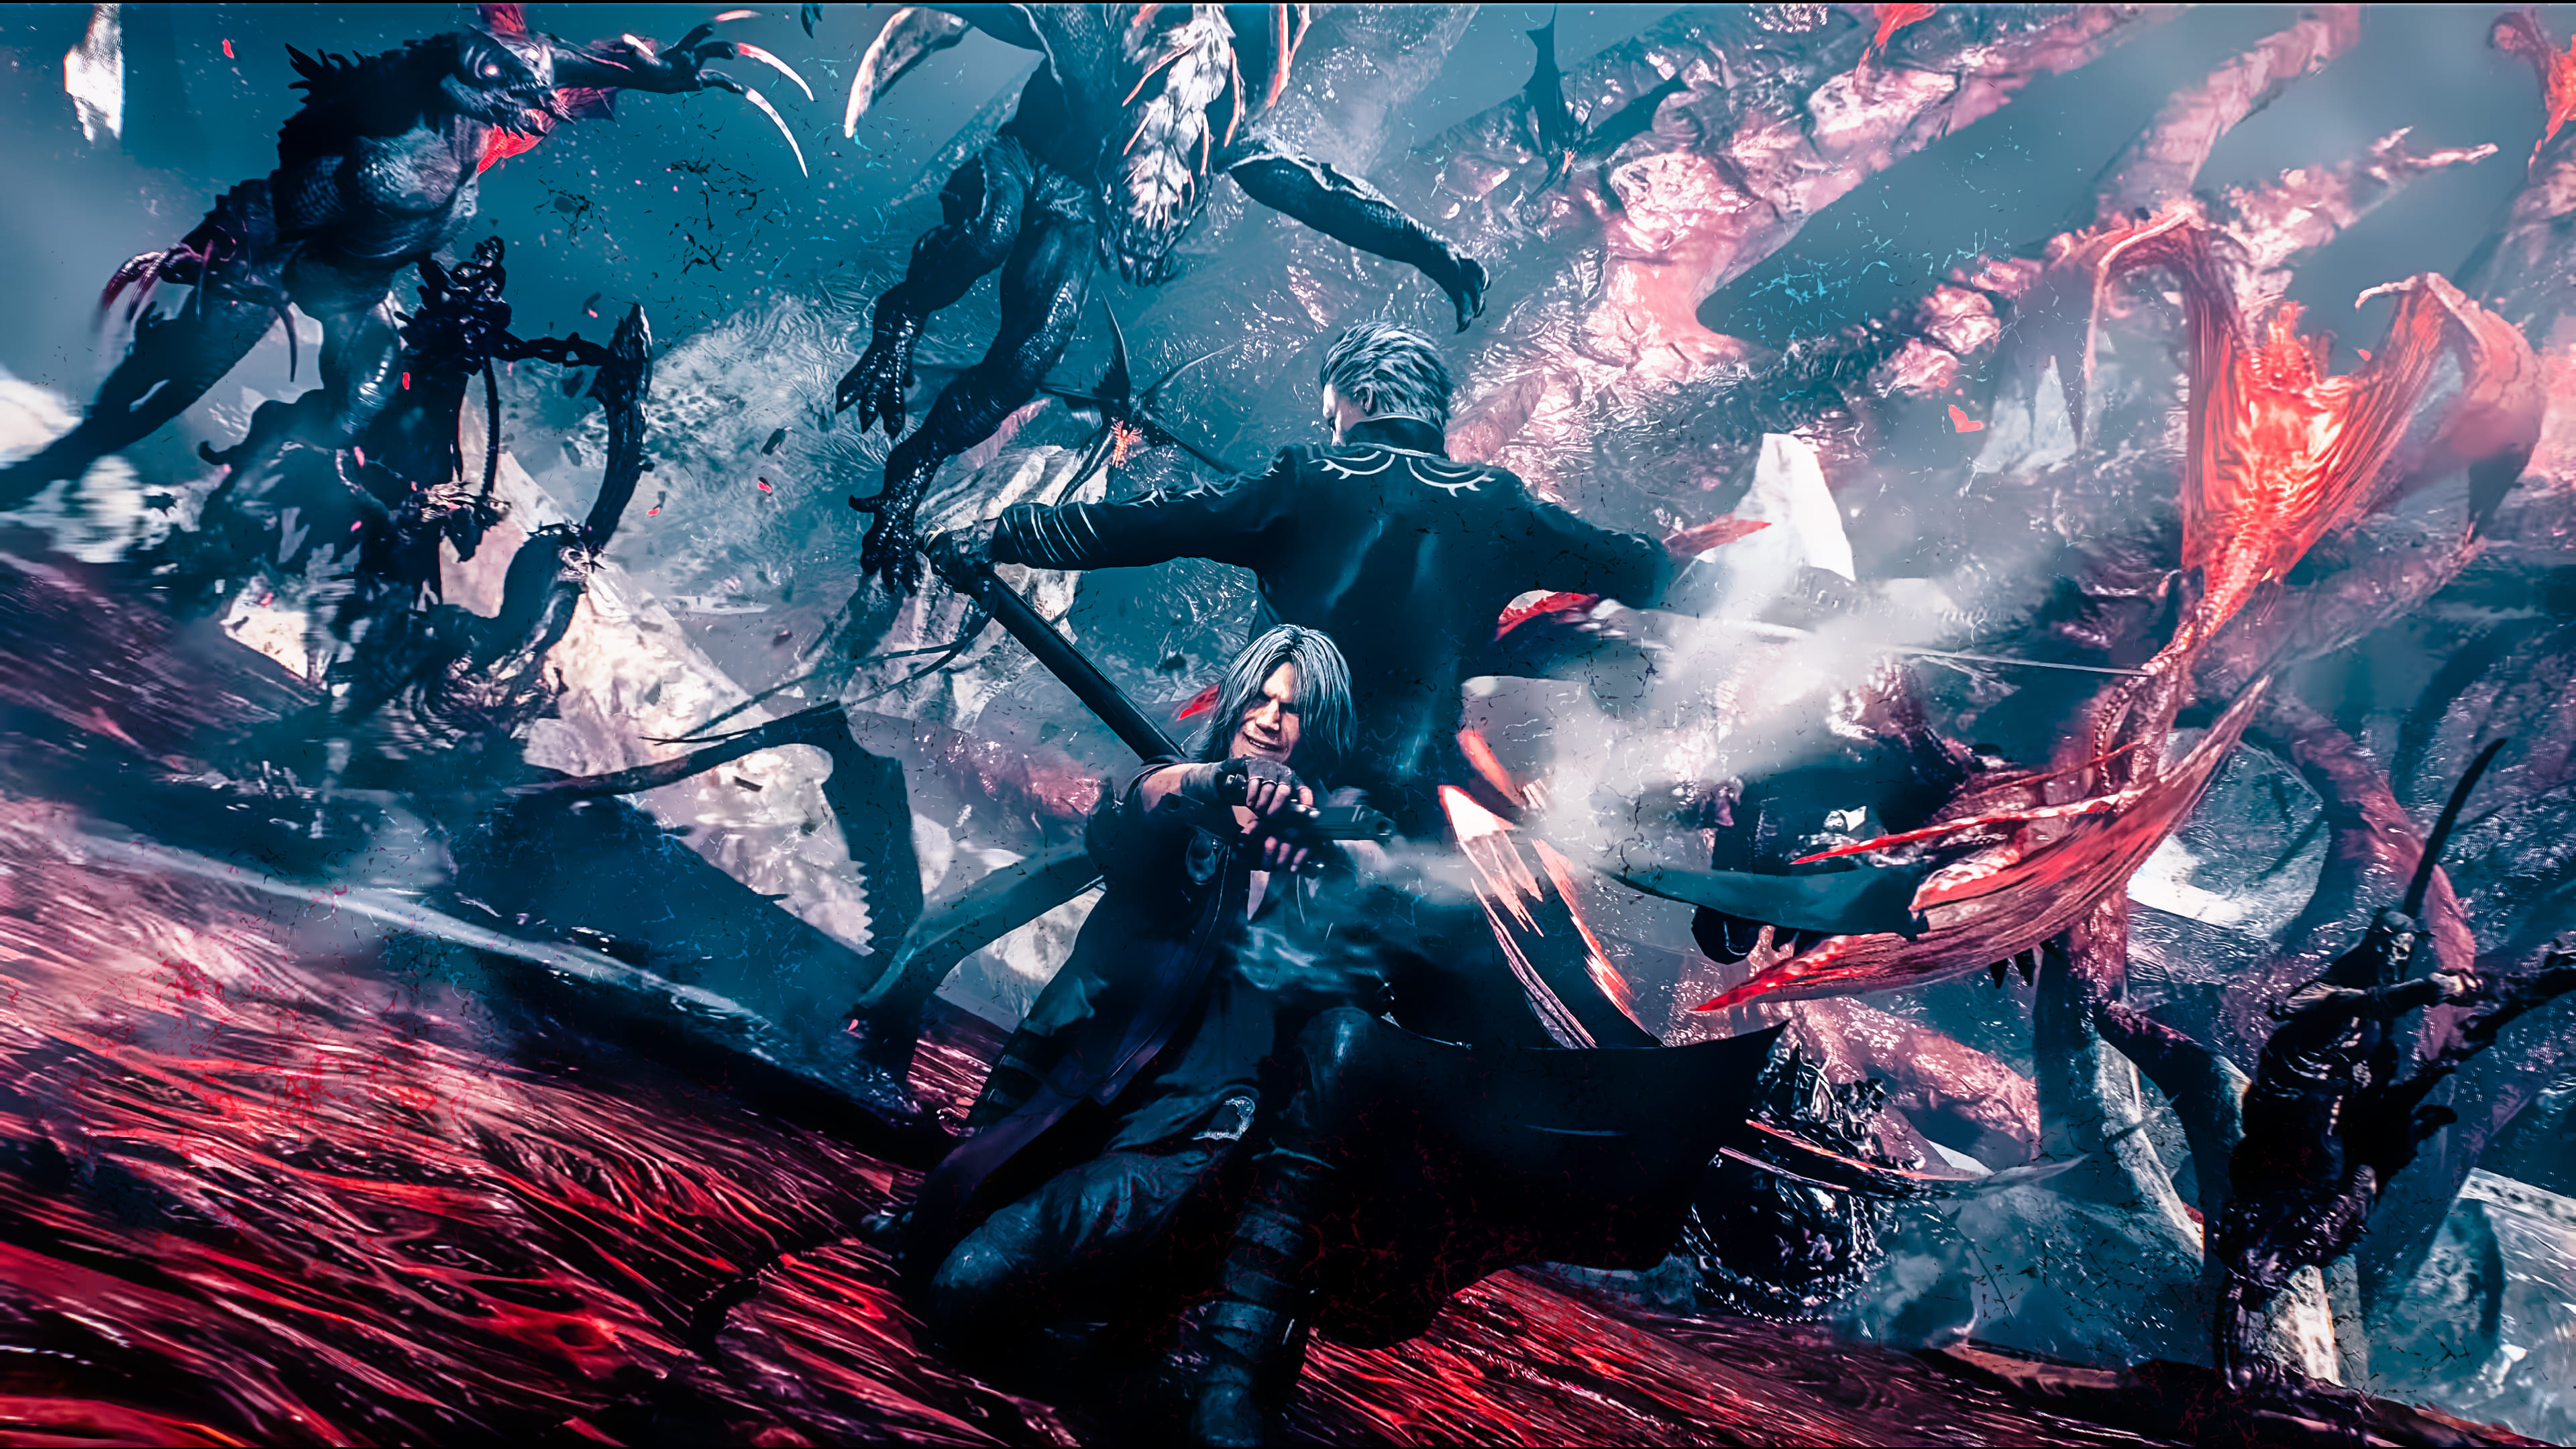 Devil May Cry 5 Hd Wallpapers 7wallpapers Net